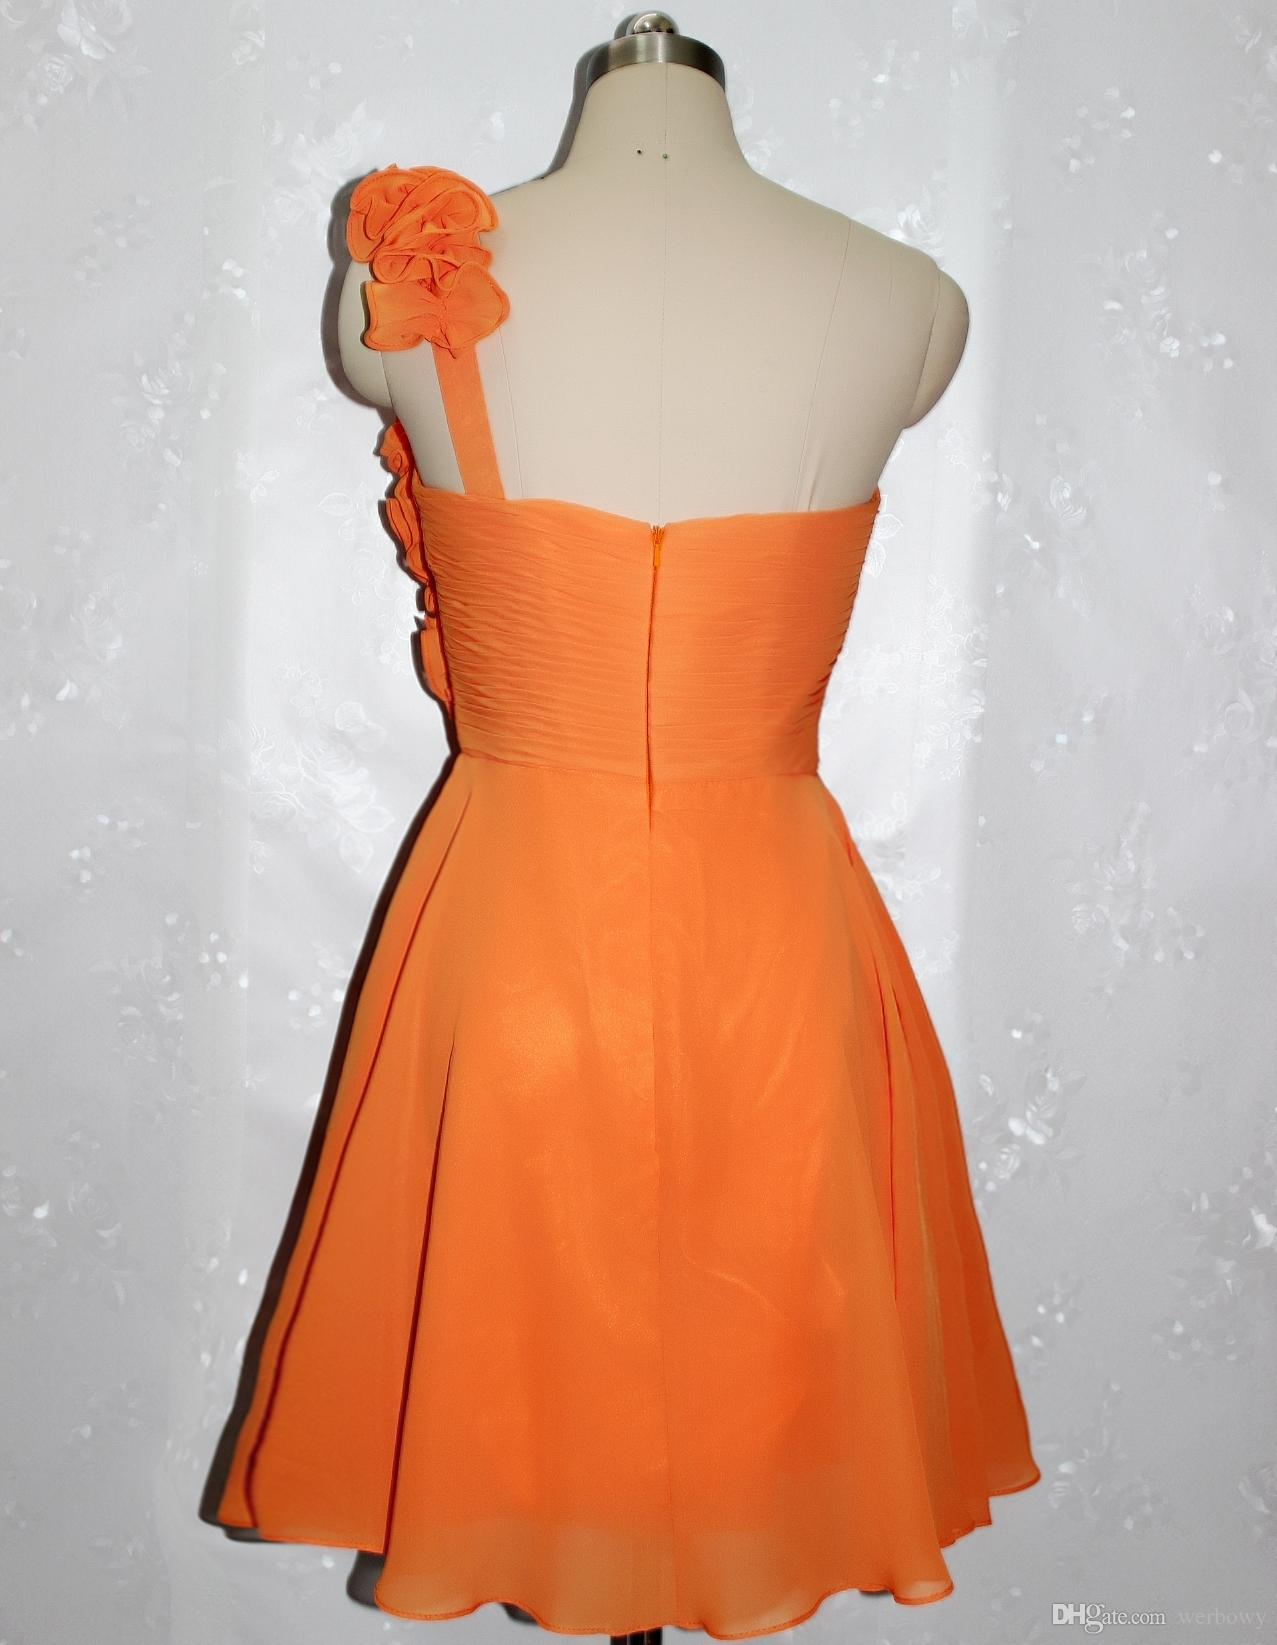 Hot Sale Orange Floral Embellished One-Shoulder A-Line Cocktail Dresses Beautiful Homecoming Gown Chiffon Ruched Short Prom Dresses HY1600